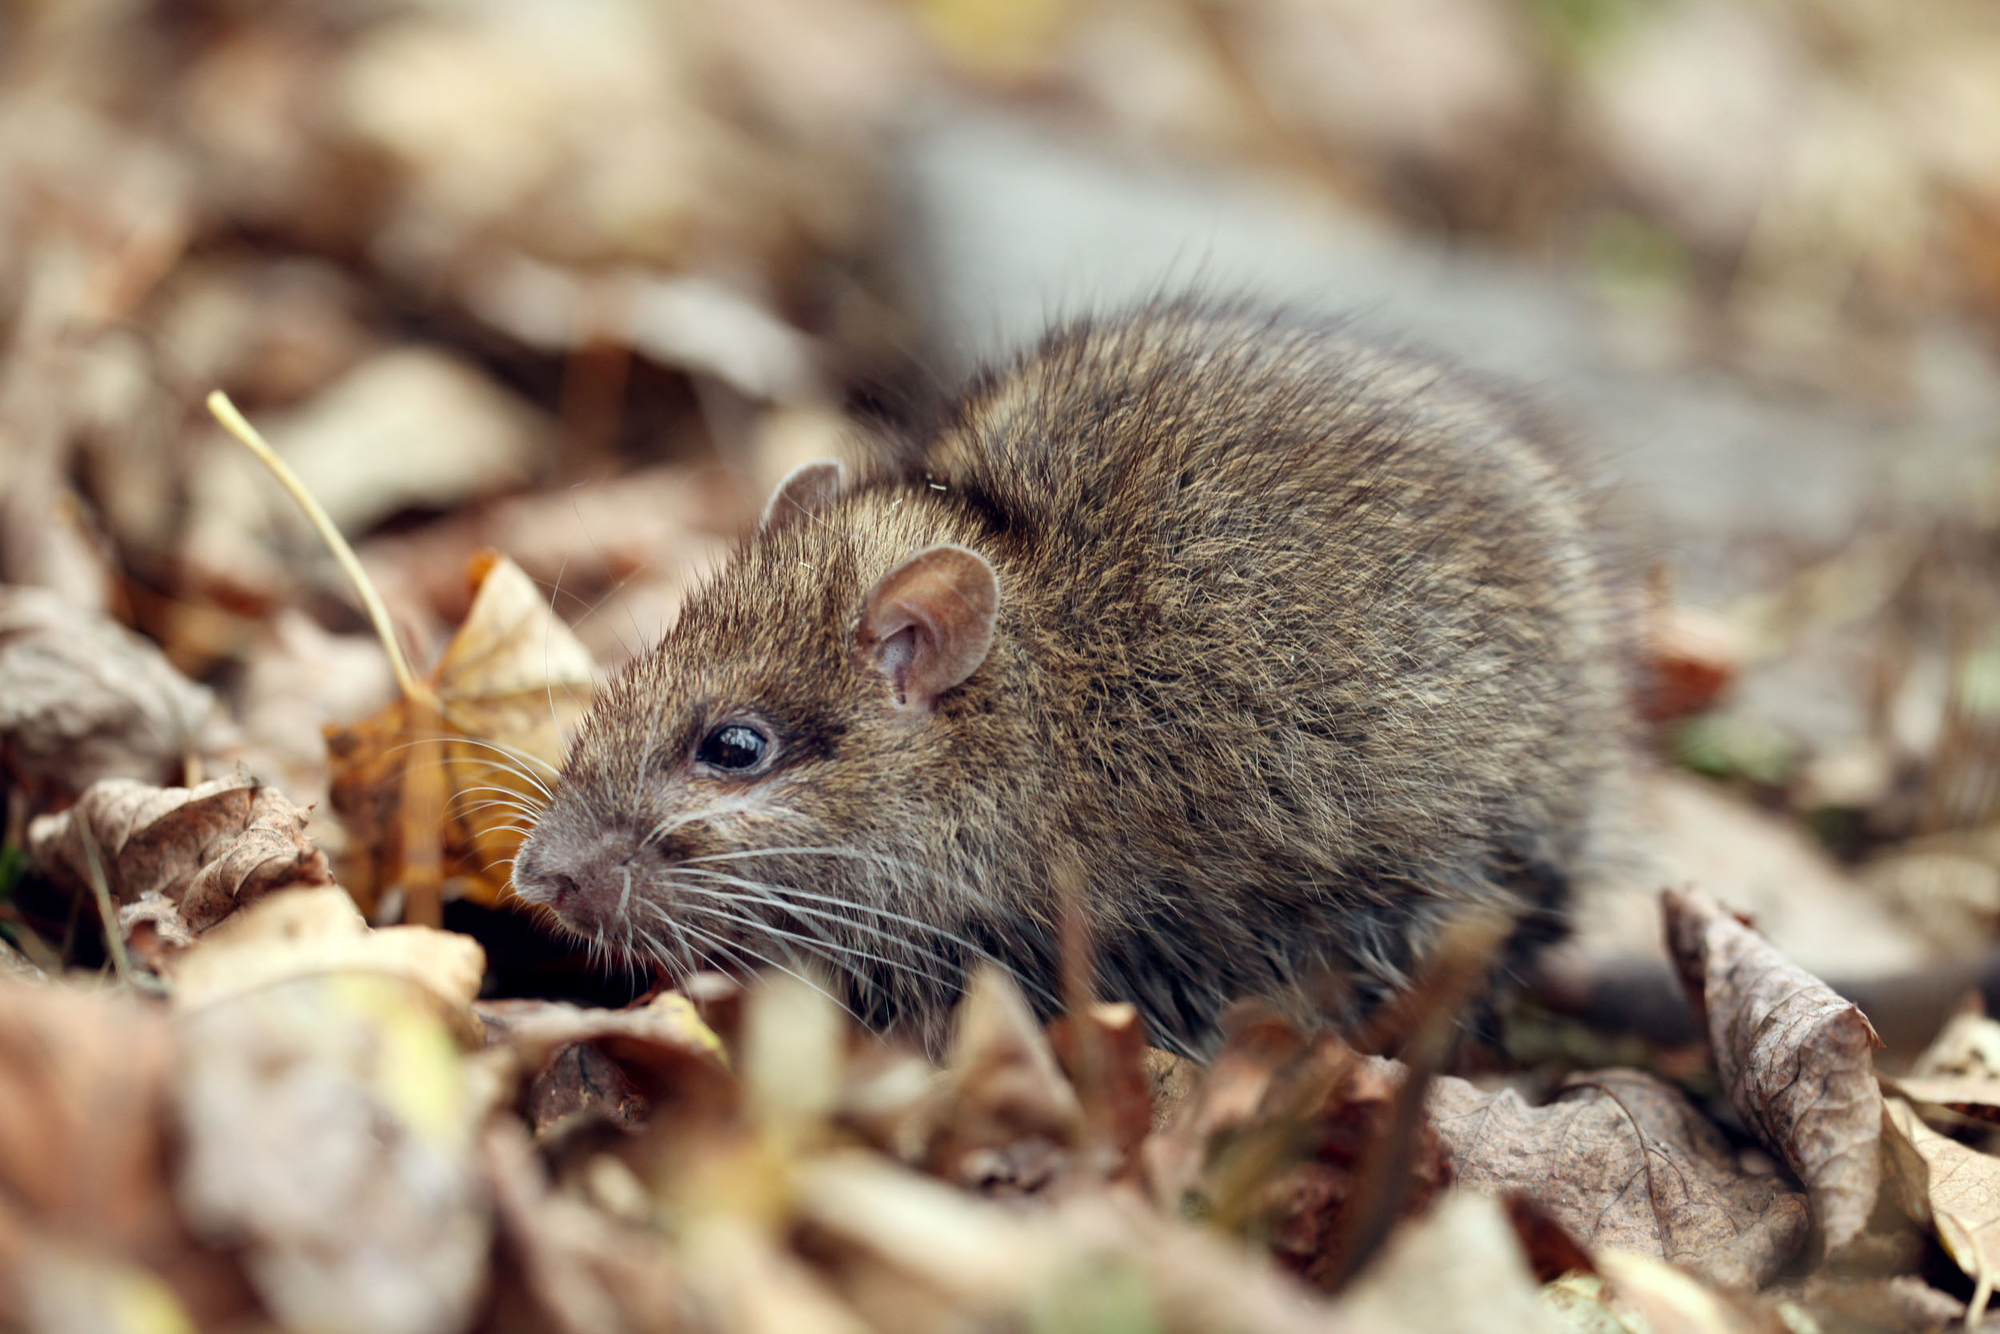 Pest Control Experts Share 3 Signs You Have a Rodent